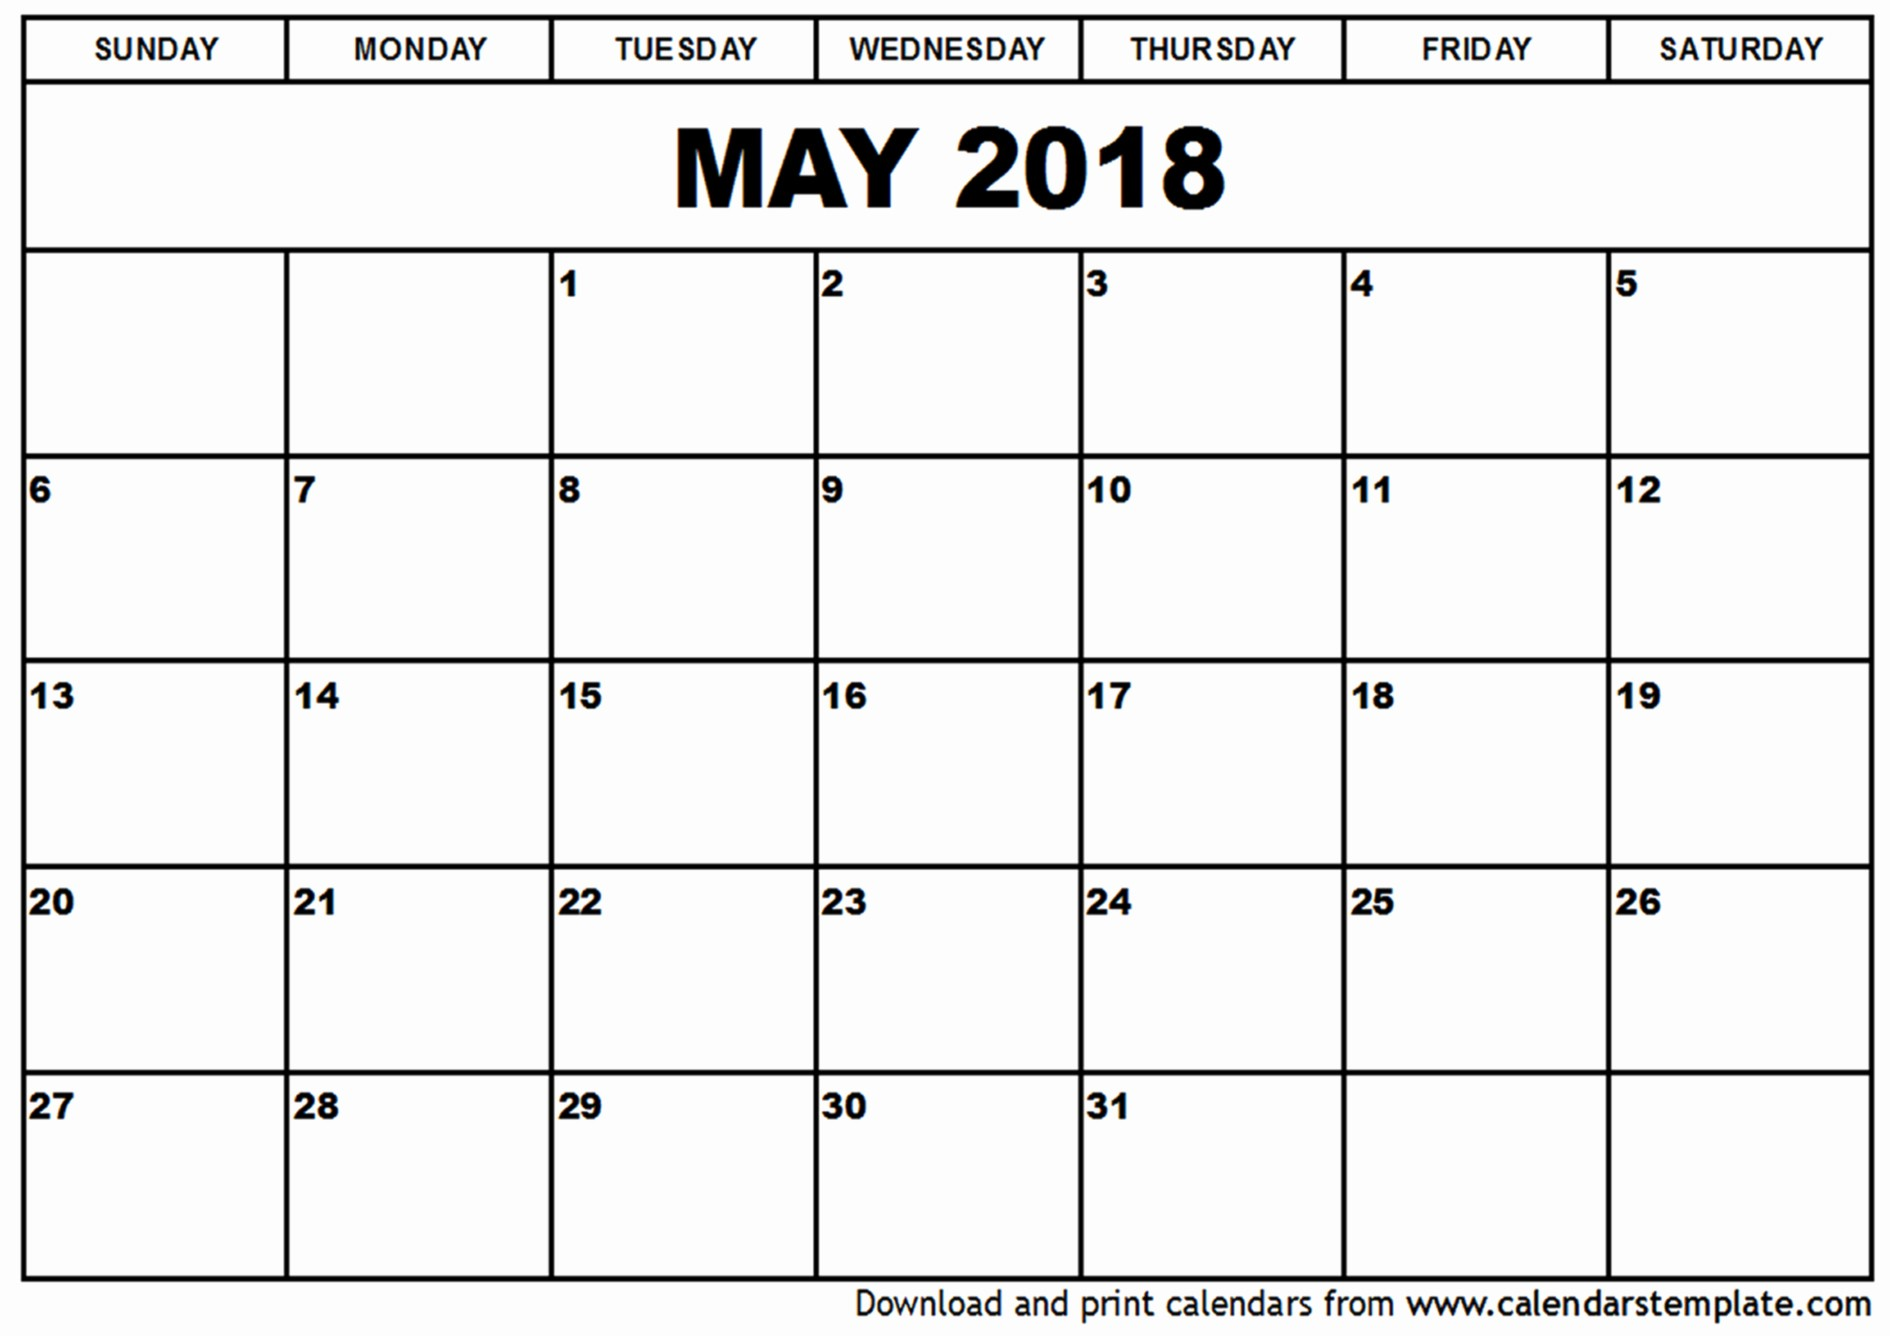 Free May 2018 Calendar Template Unique May 2018 Calendar Template